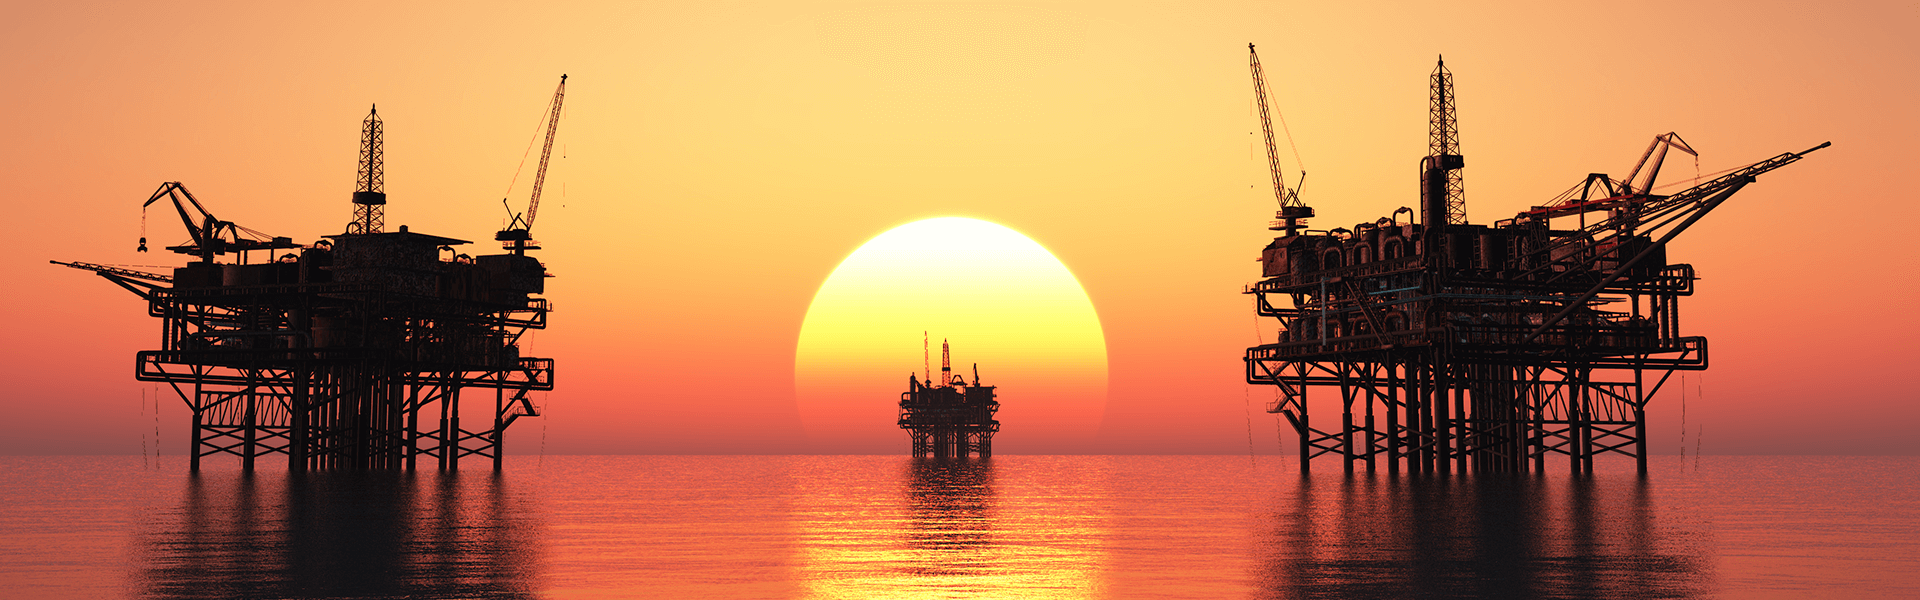 Oil rig with sunset